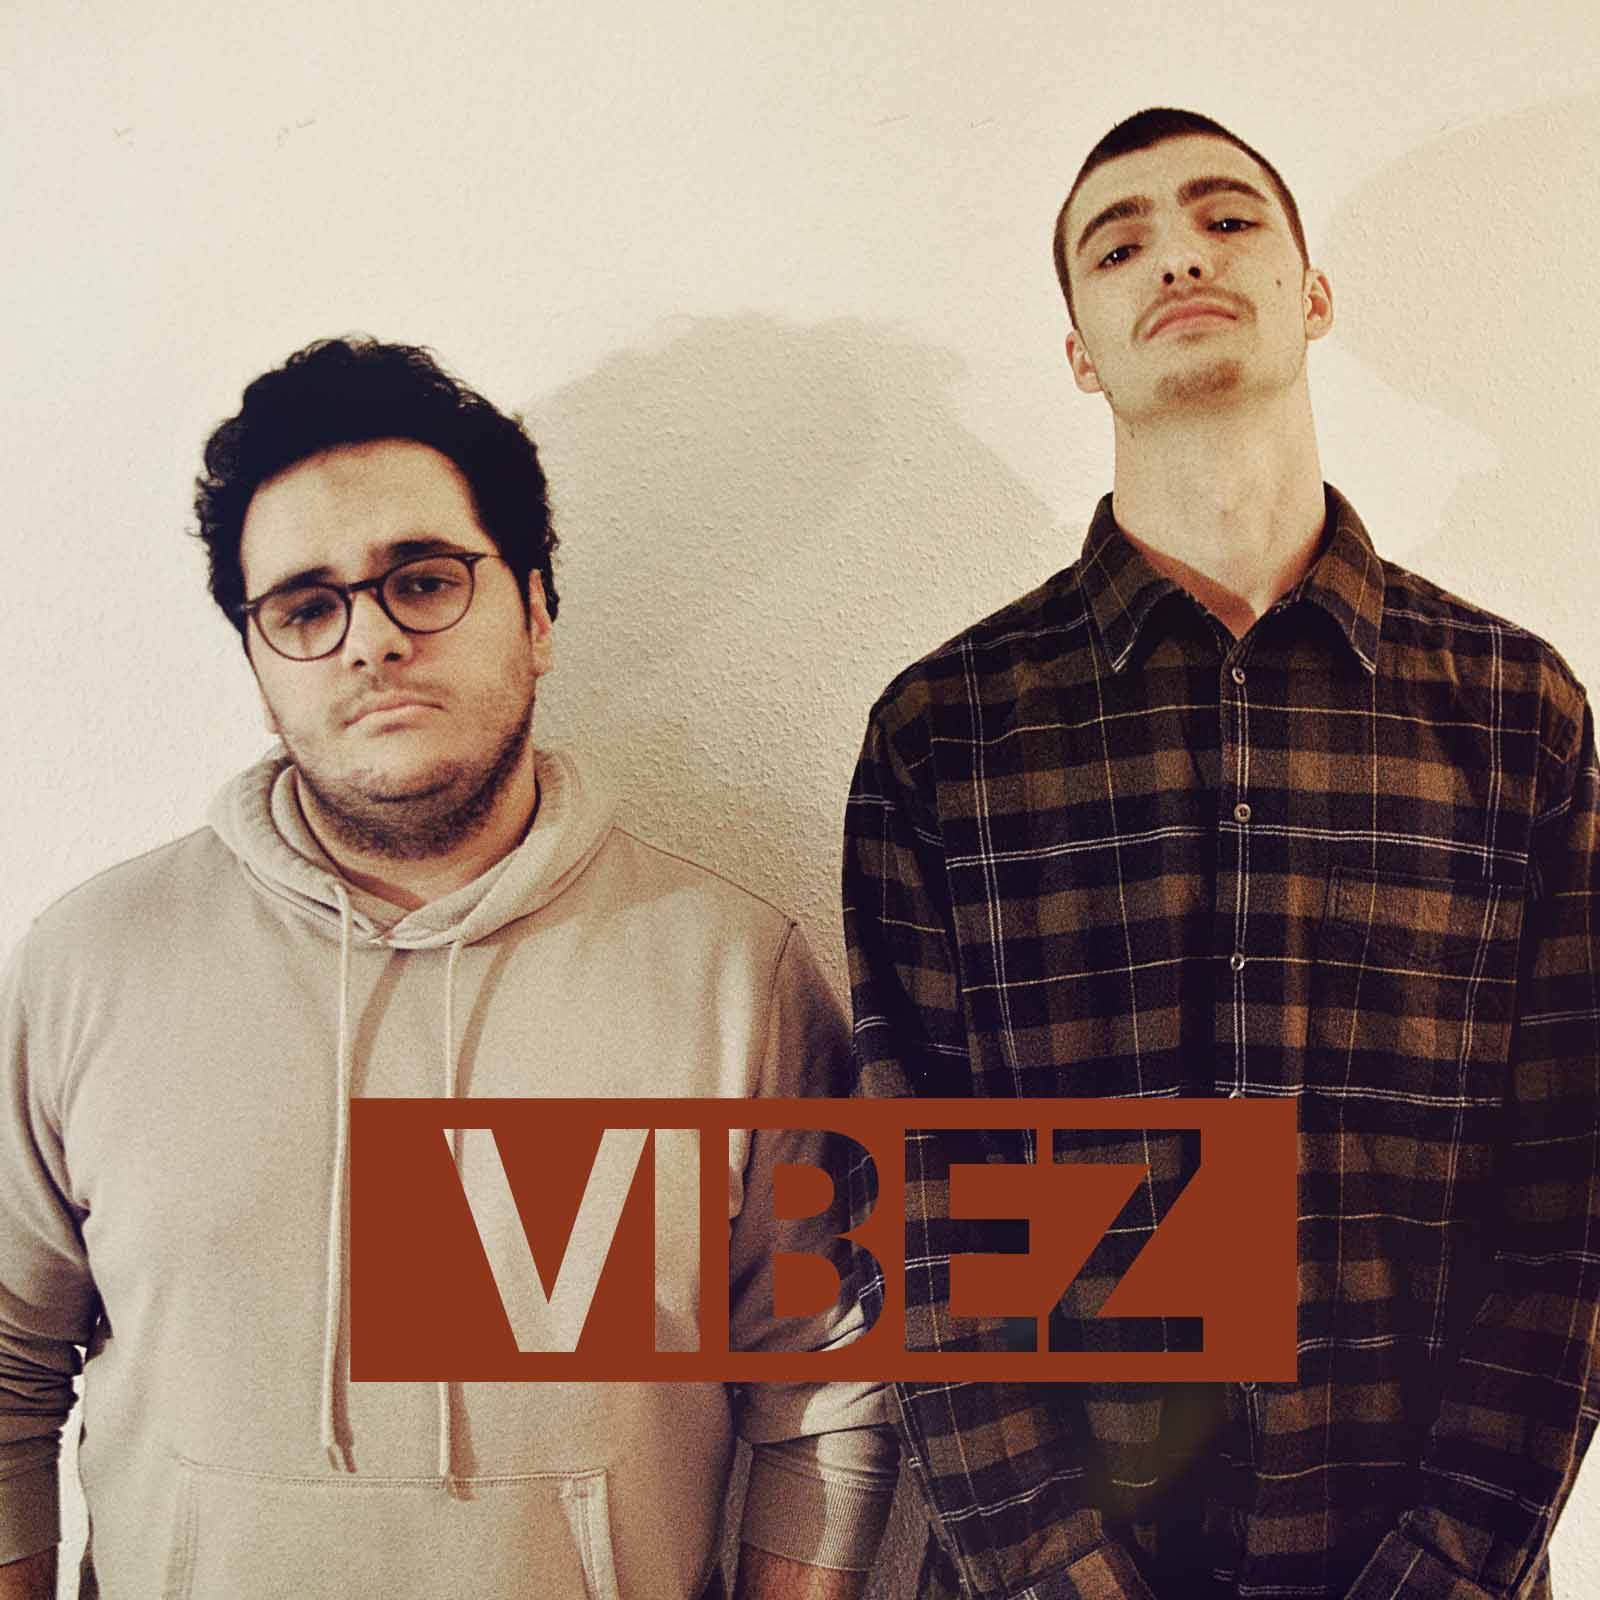 Upcoming: Jaaas x Lassal - VIBEZ (Video)